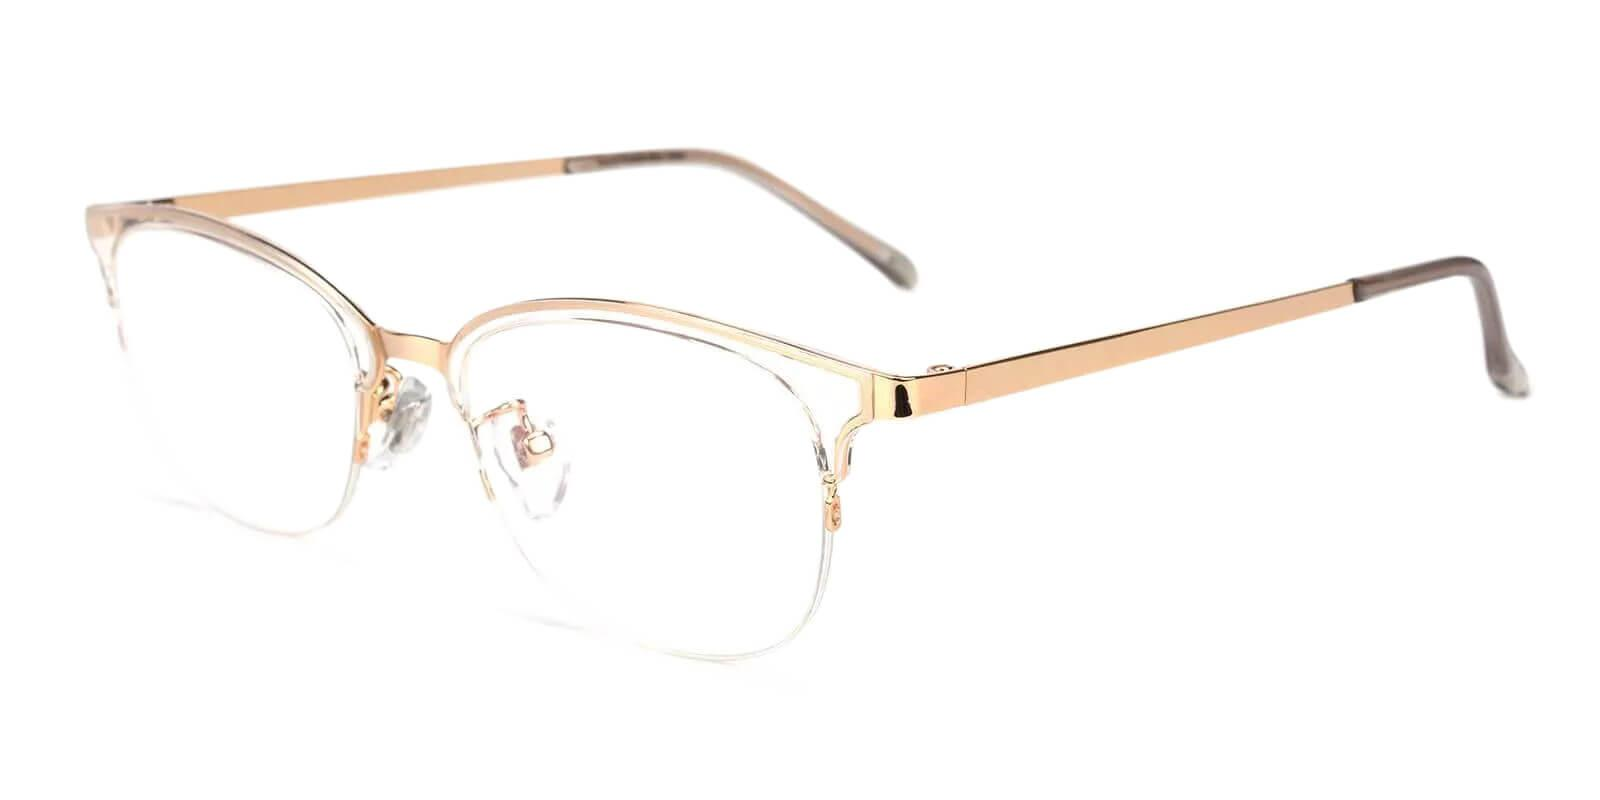 Polly Translucent Combination Eyeglasses , Fashion , NosePads Frames from ABBE Glasses